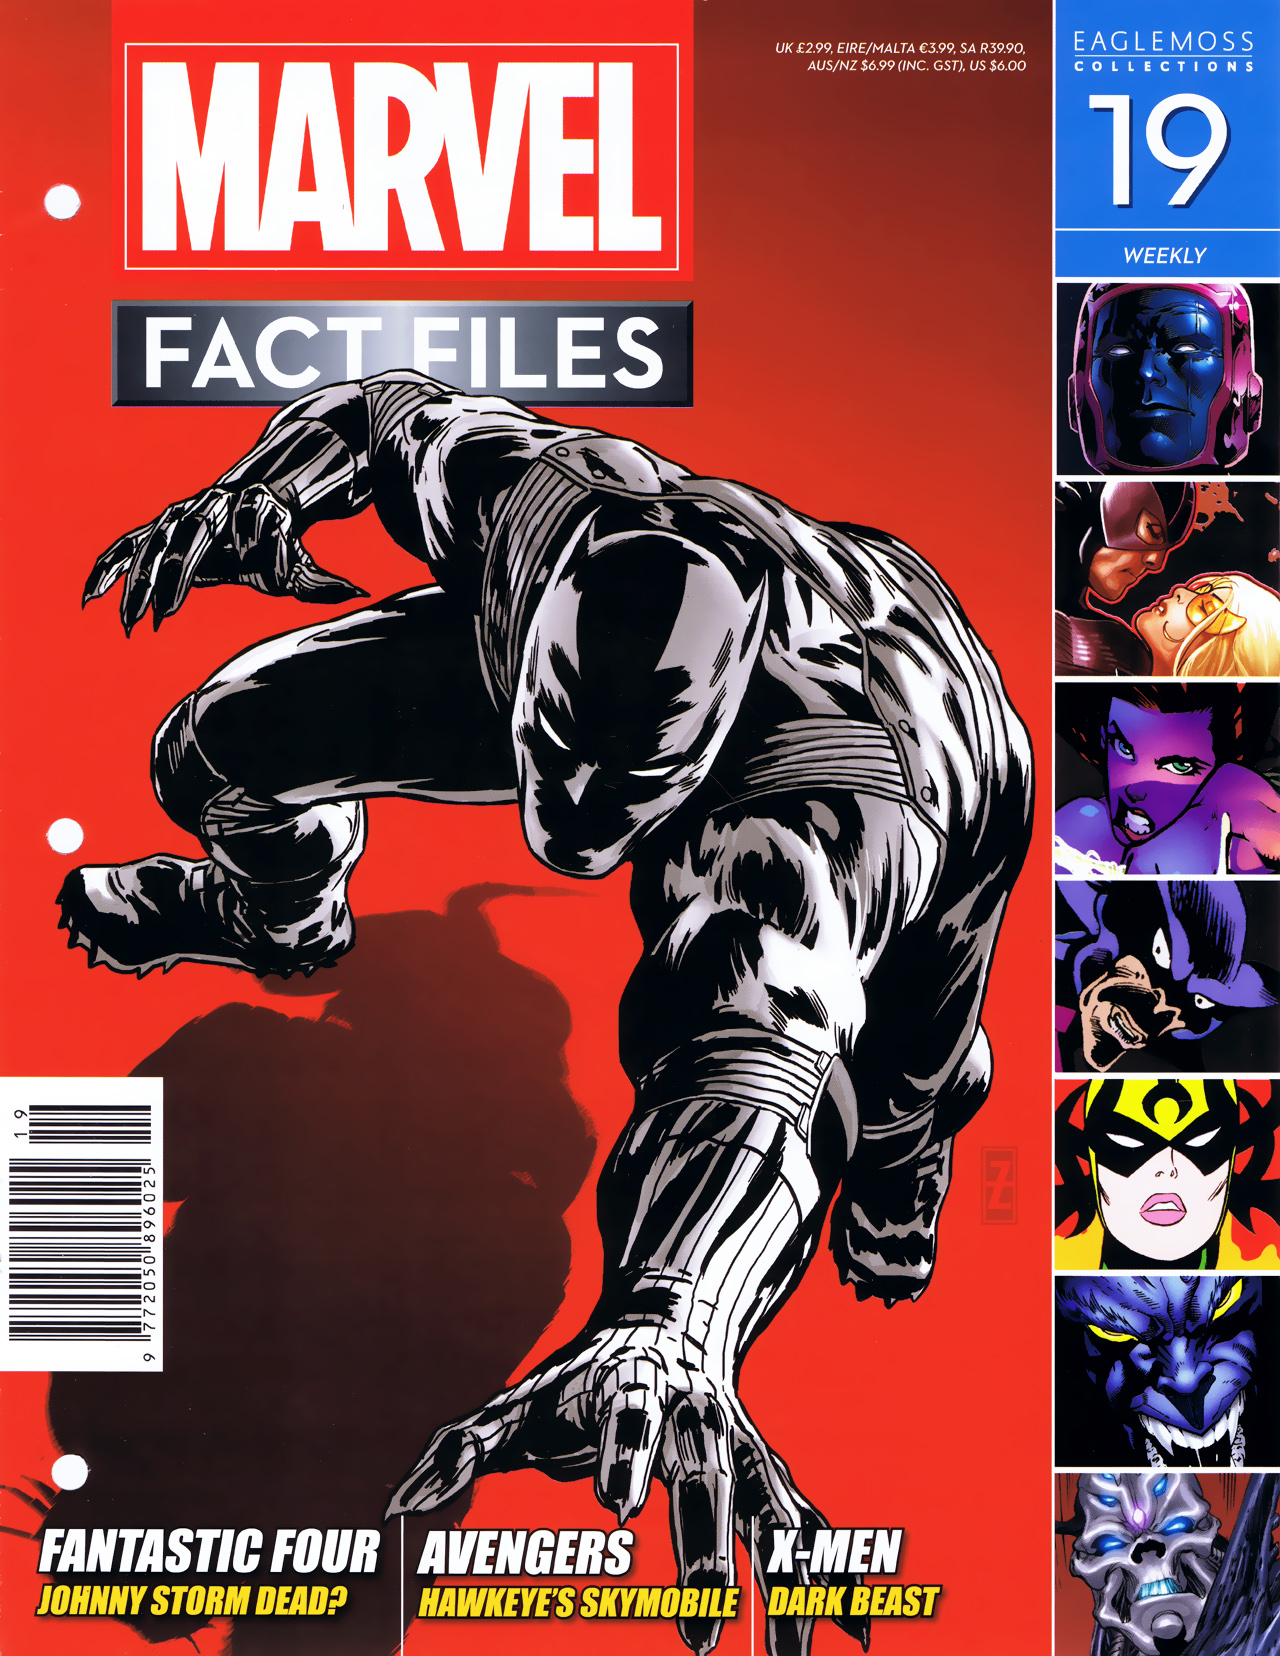 Marvel Fact Files 19 Page 1